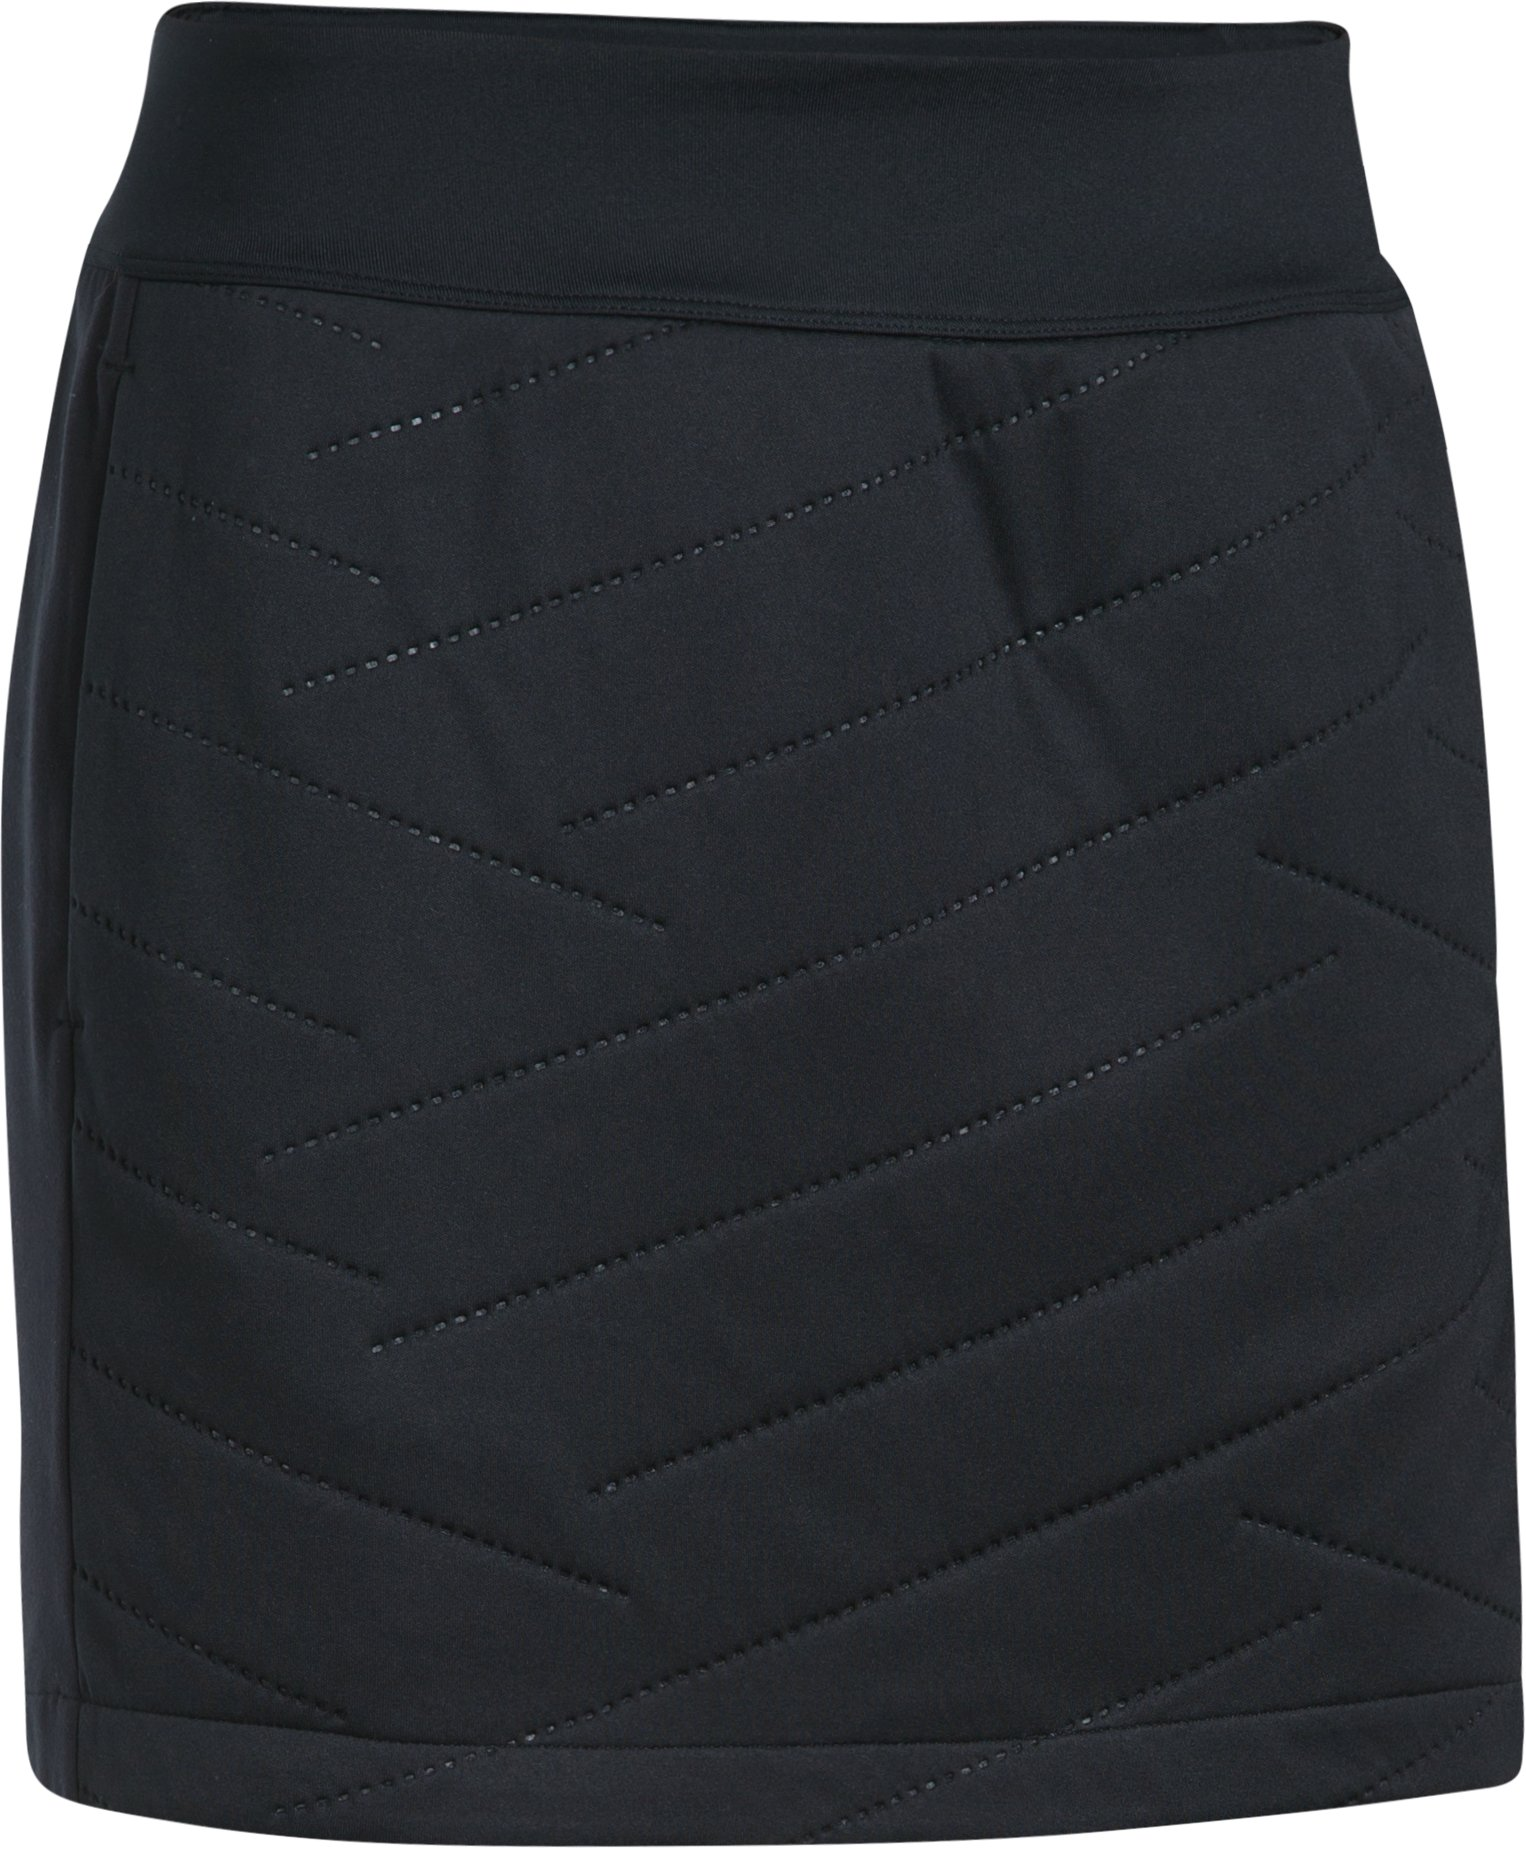 Women's ColdGear® Reactor Skirt, Black ,